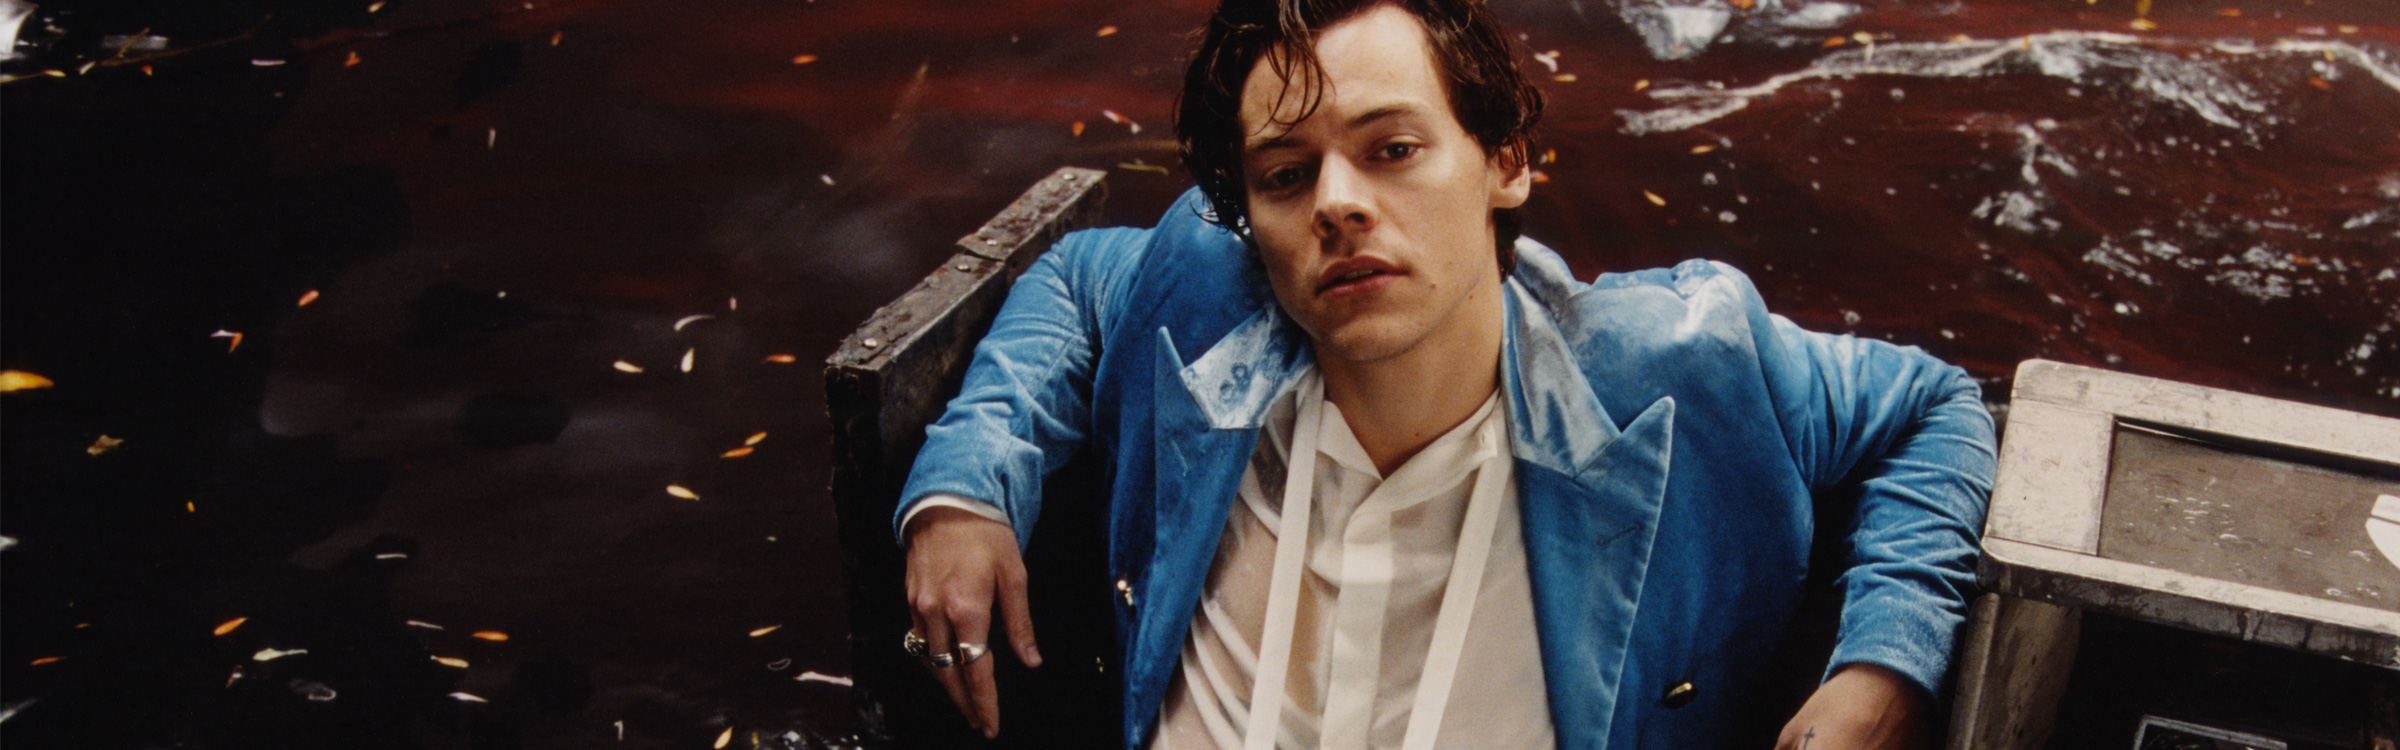 Harry tour header